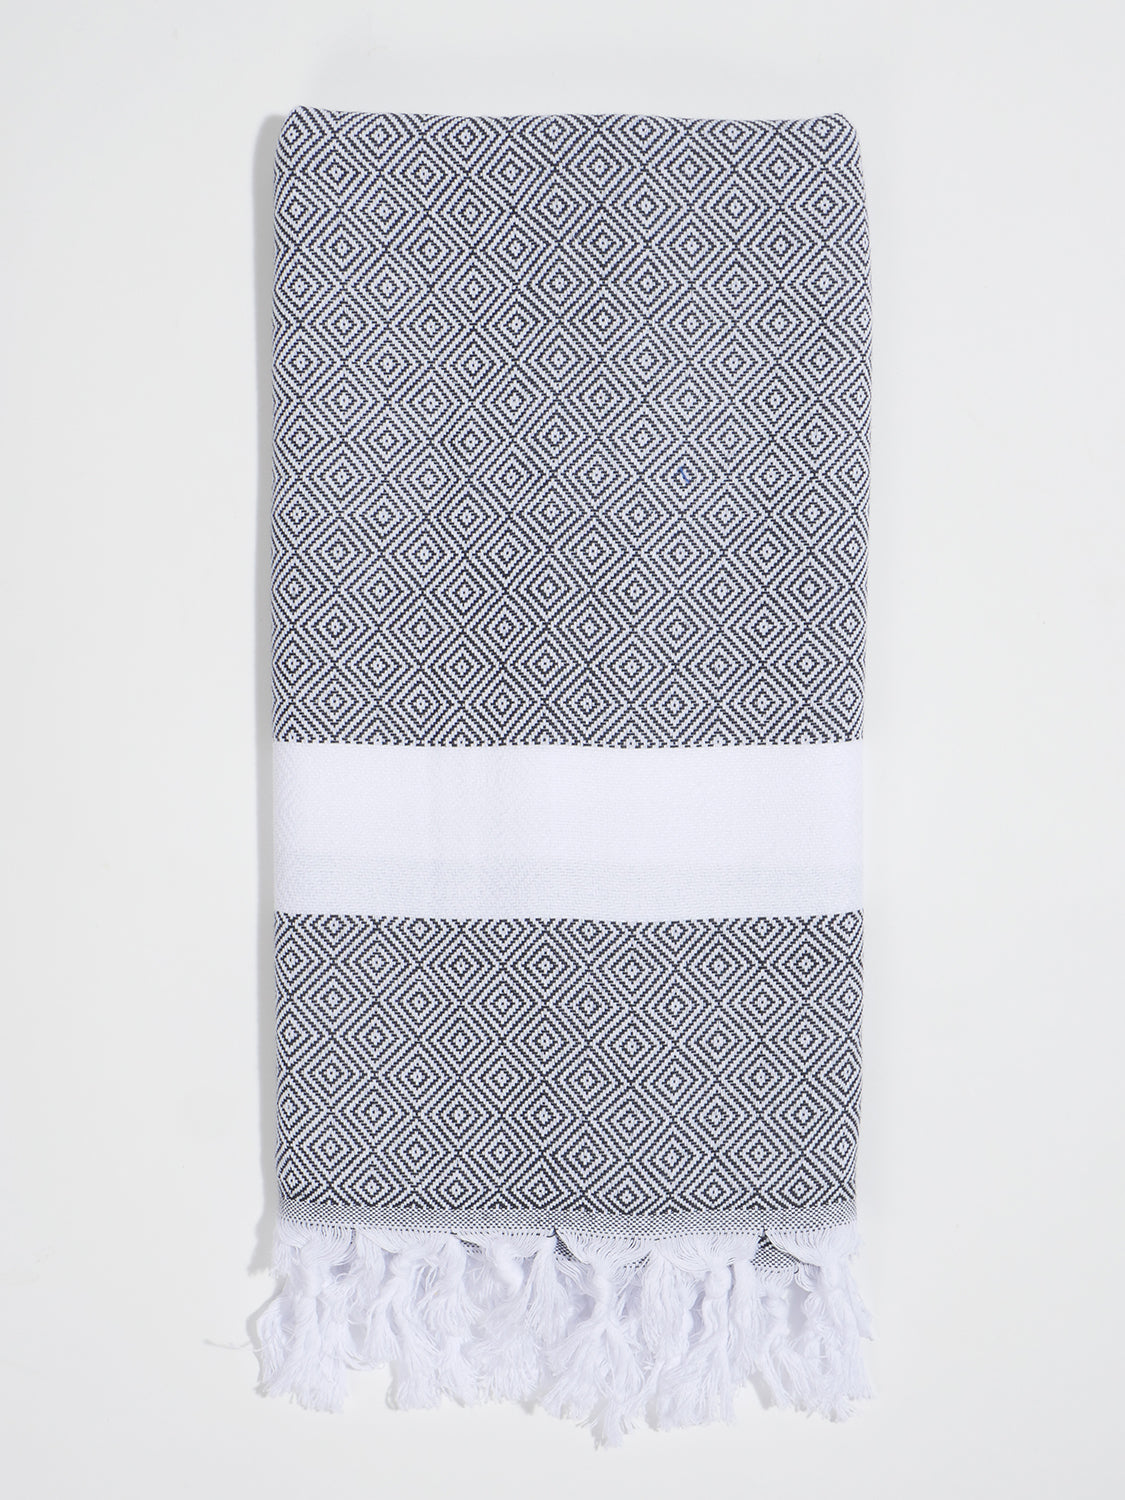 Izla Bodrum Hamam Towel White on Black - Izla